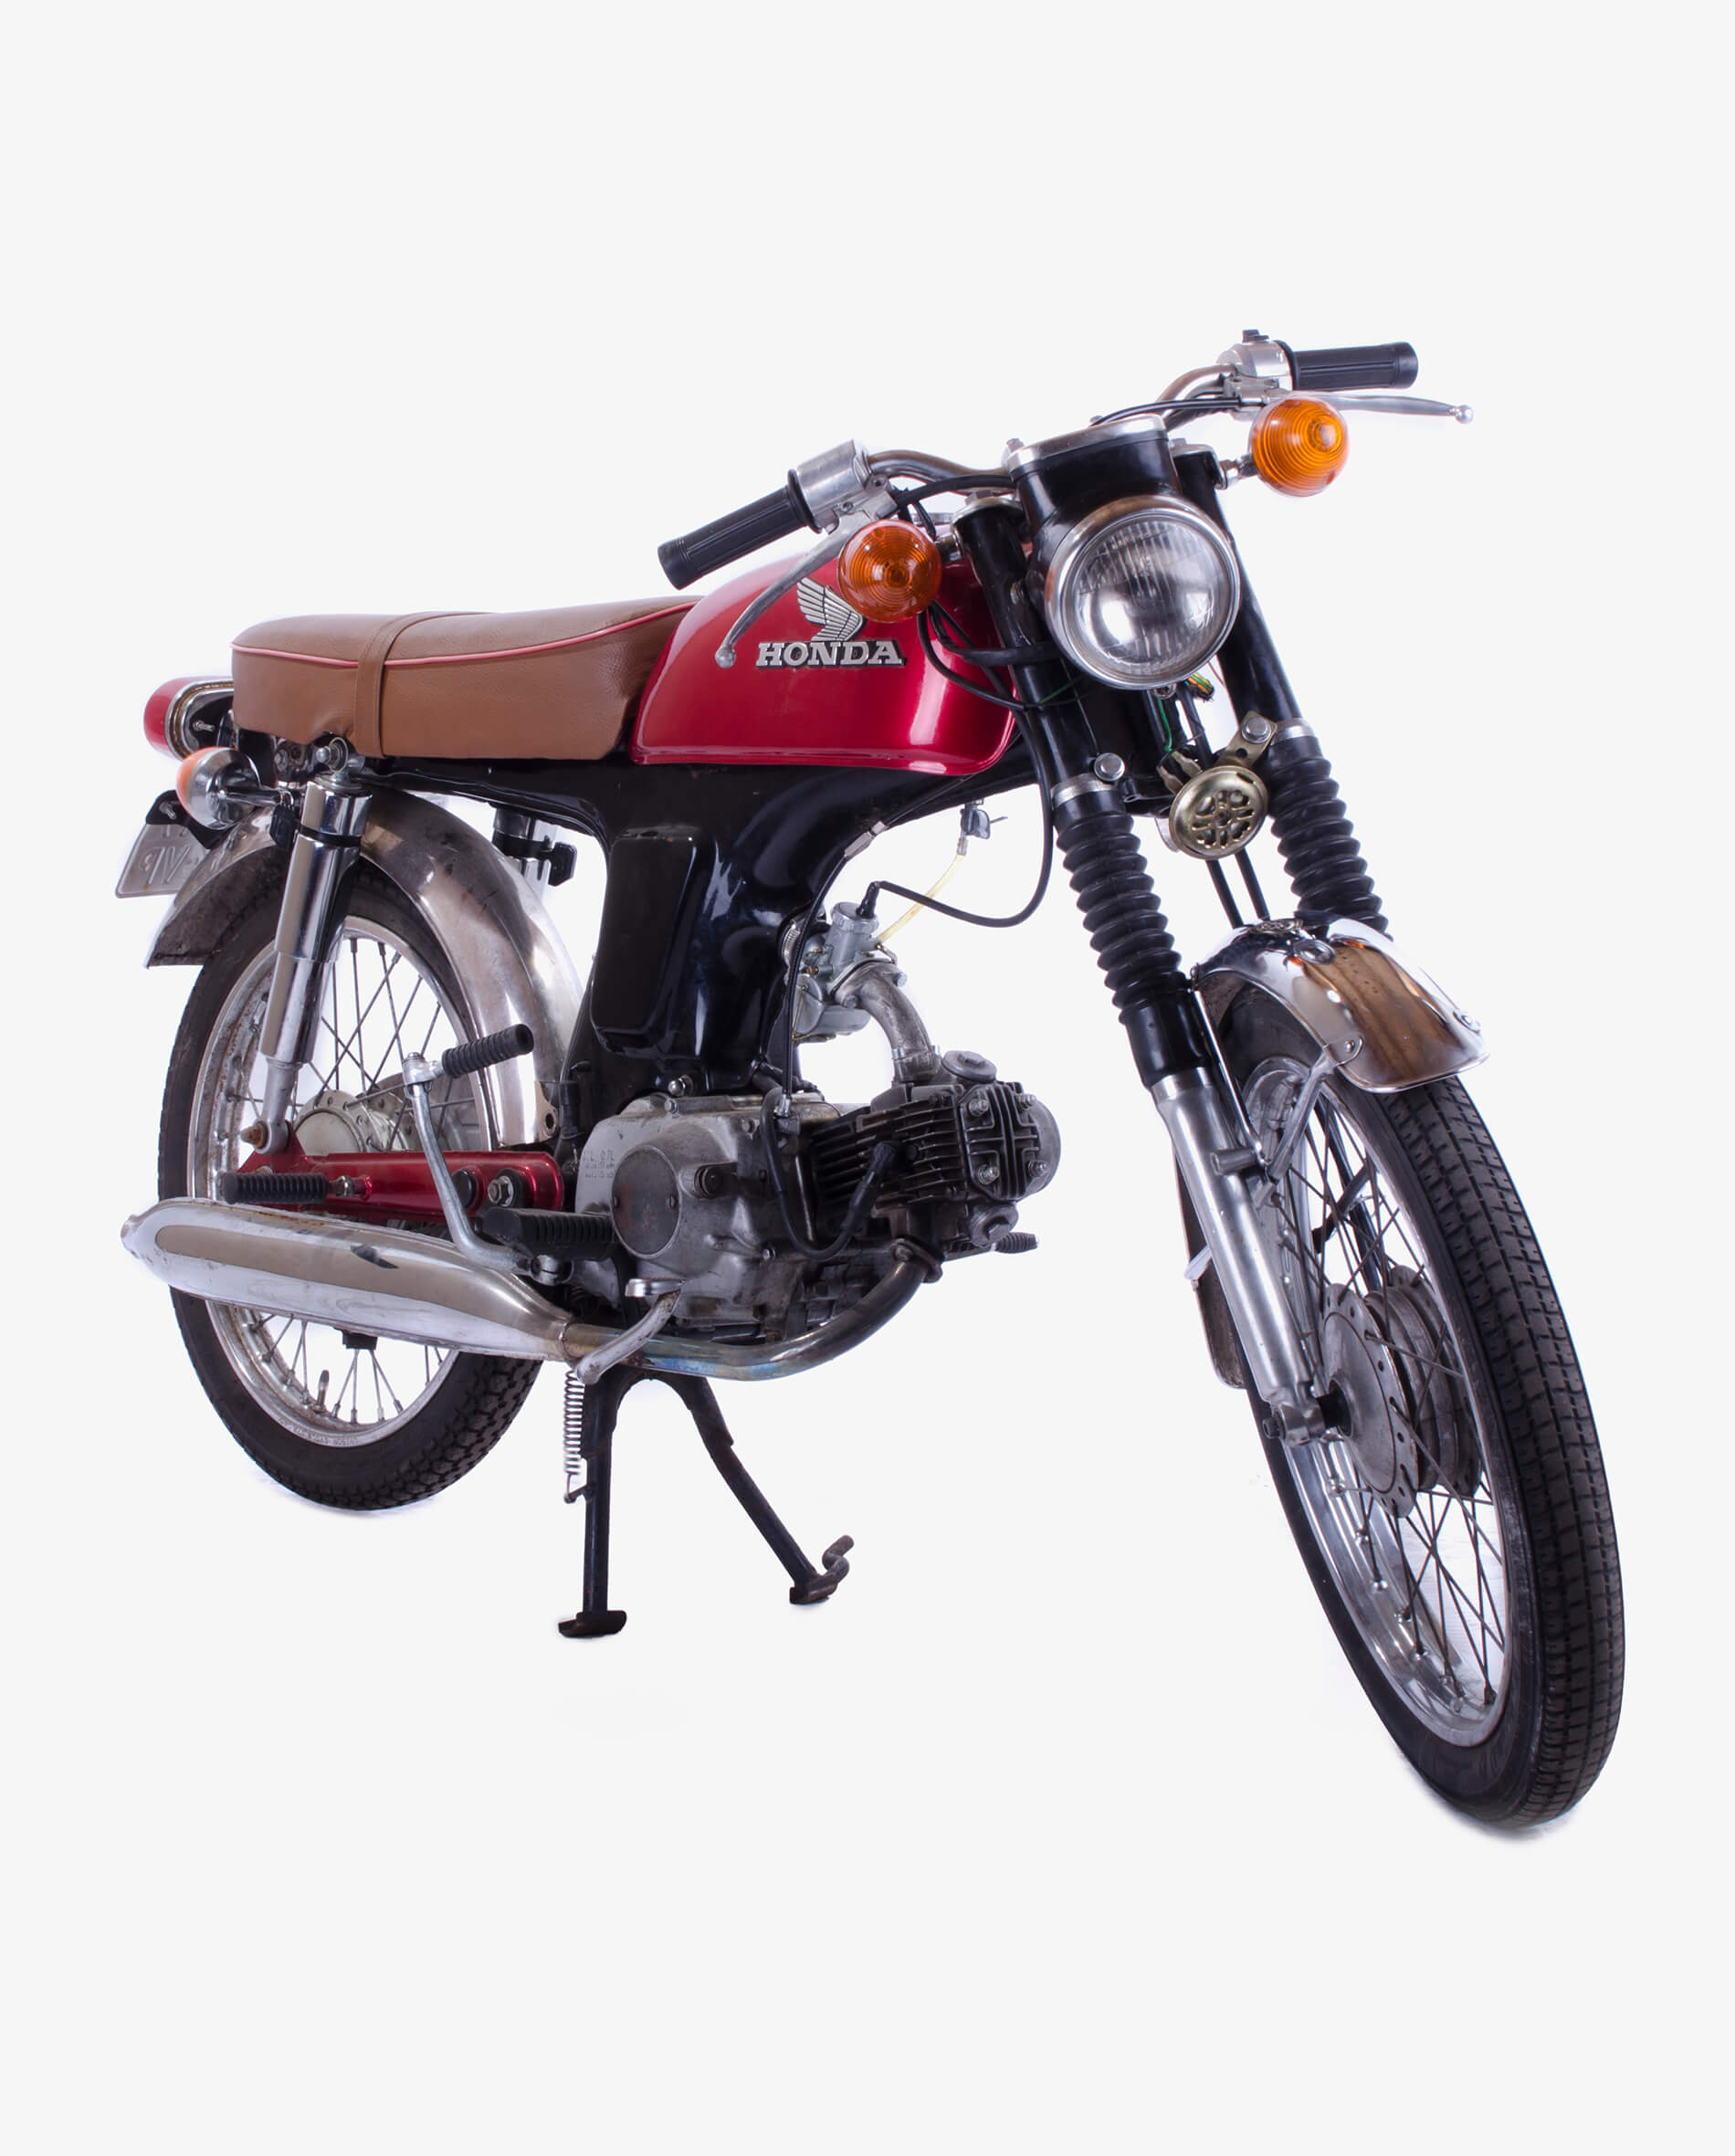 Honda Benly with SS50 frame · Fourstrokebarn